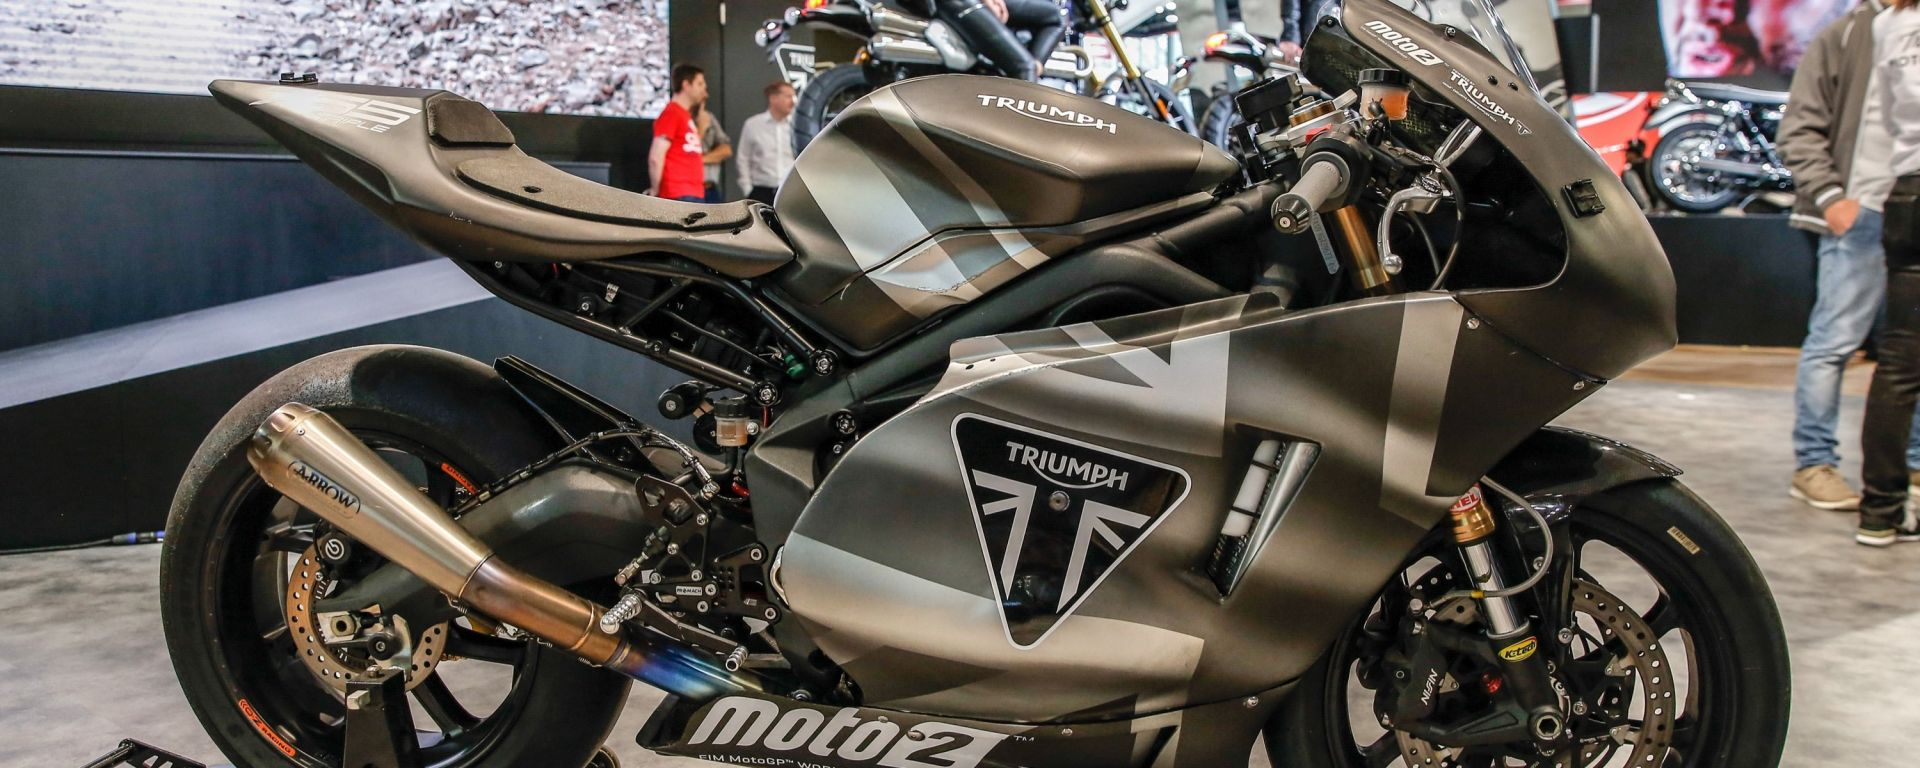 Eicma 2018, nuova Triumph Moto2 2019. Come testimonial... [VIDEO]